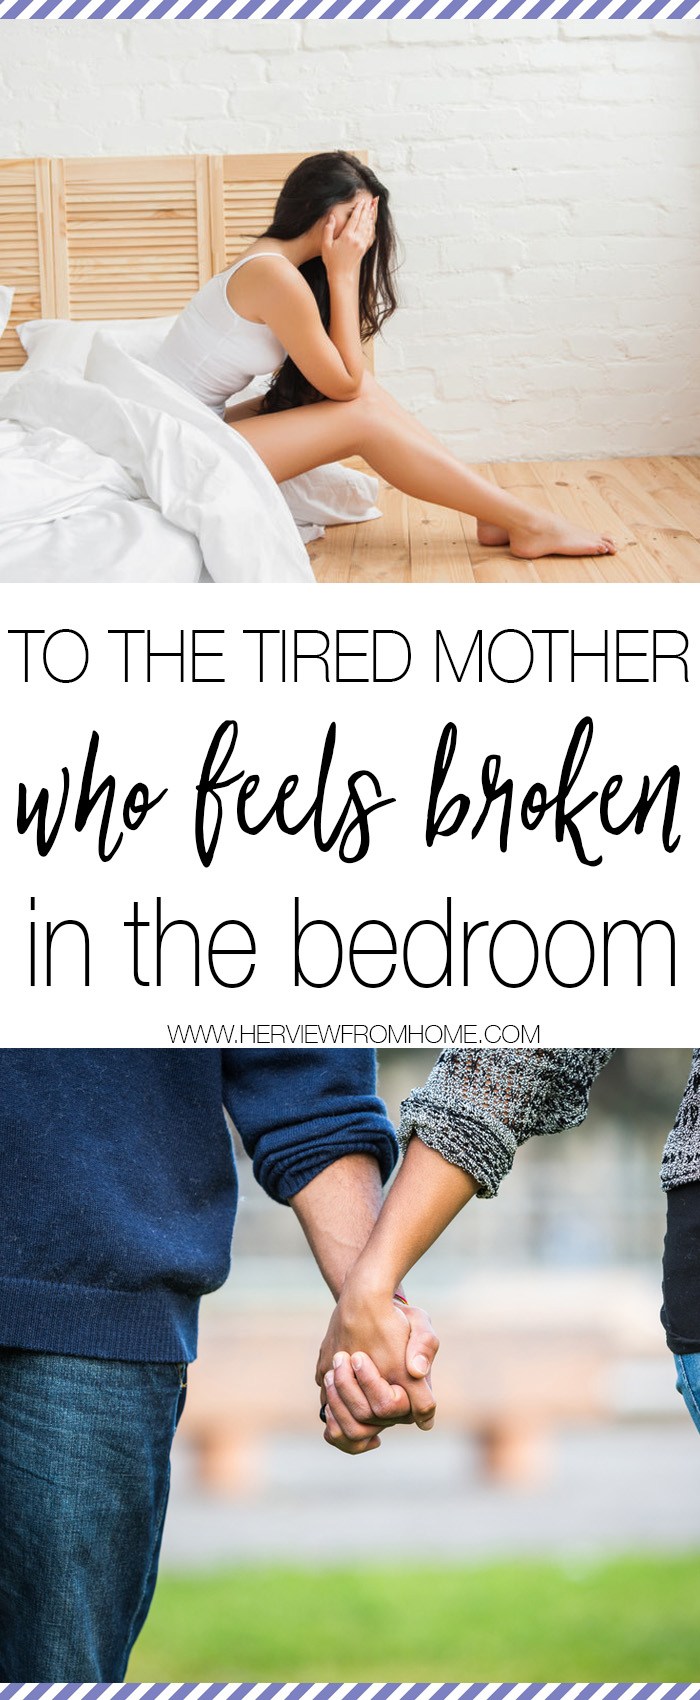 Momma, you aren't broken. This piece of you is simply sleeping, don't give up. Awaken her with God's help.